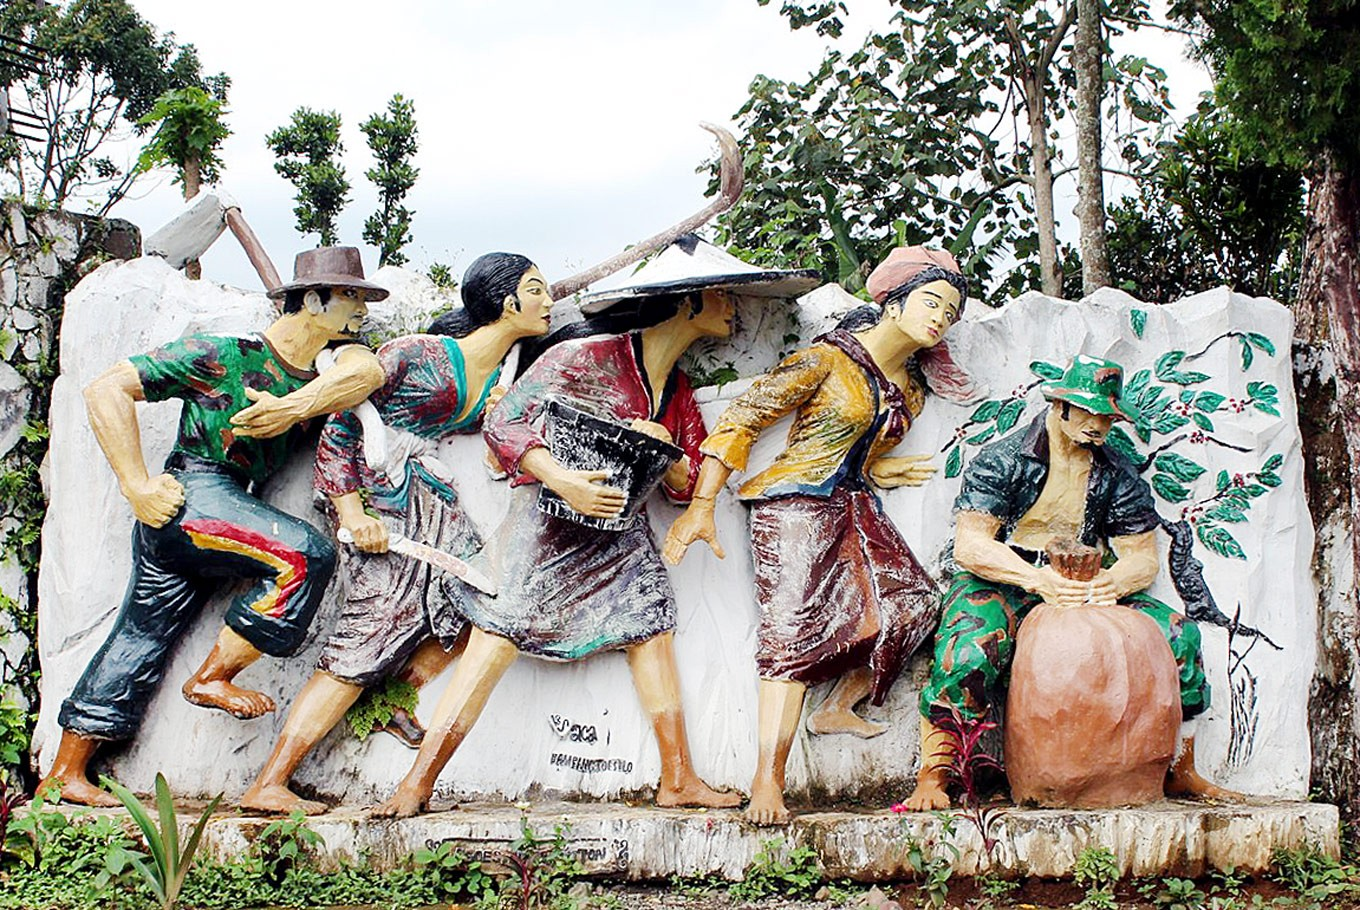 Problems brewing in Tugu coffee grounds